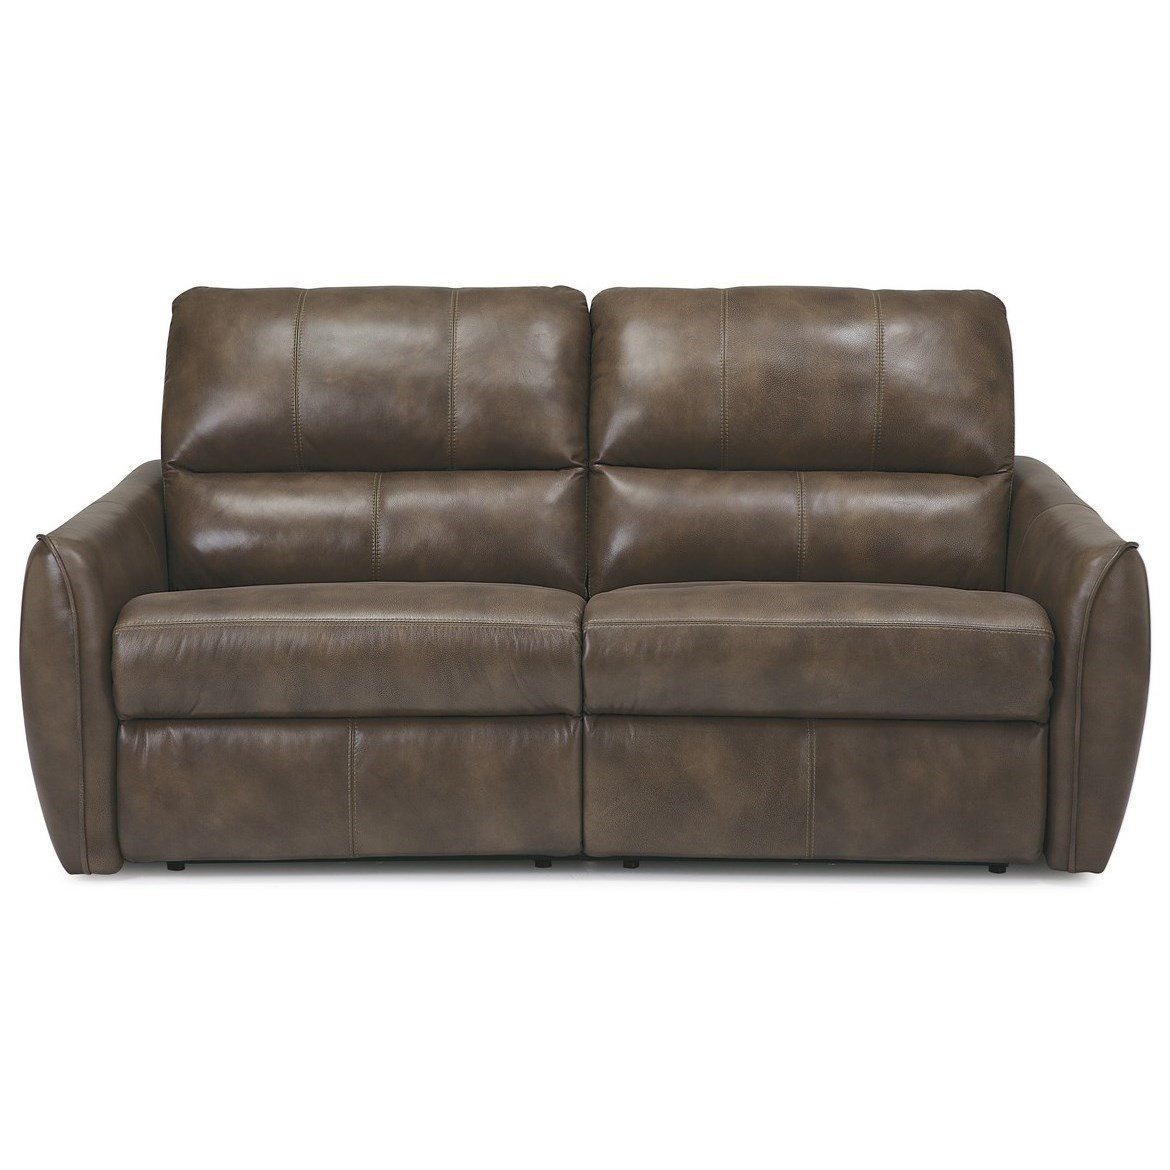 Palliser Arlo Contemporary Sofa Recliner With Tapered Arms